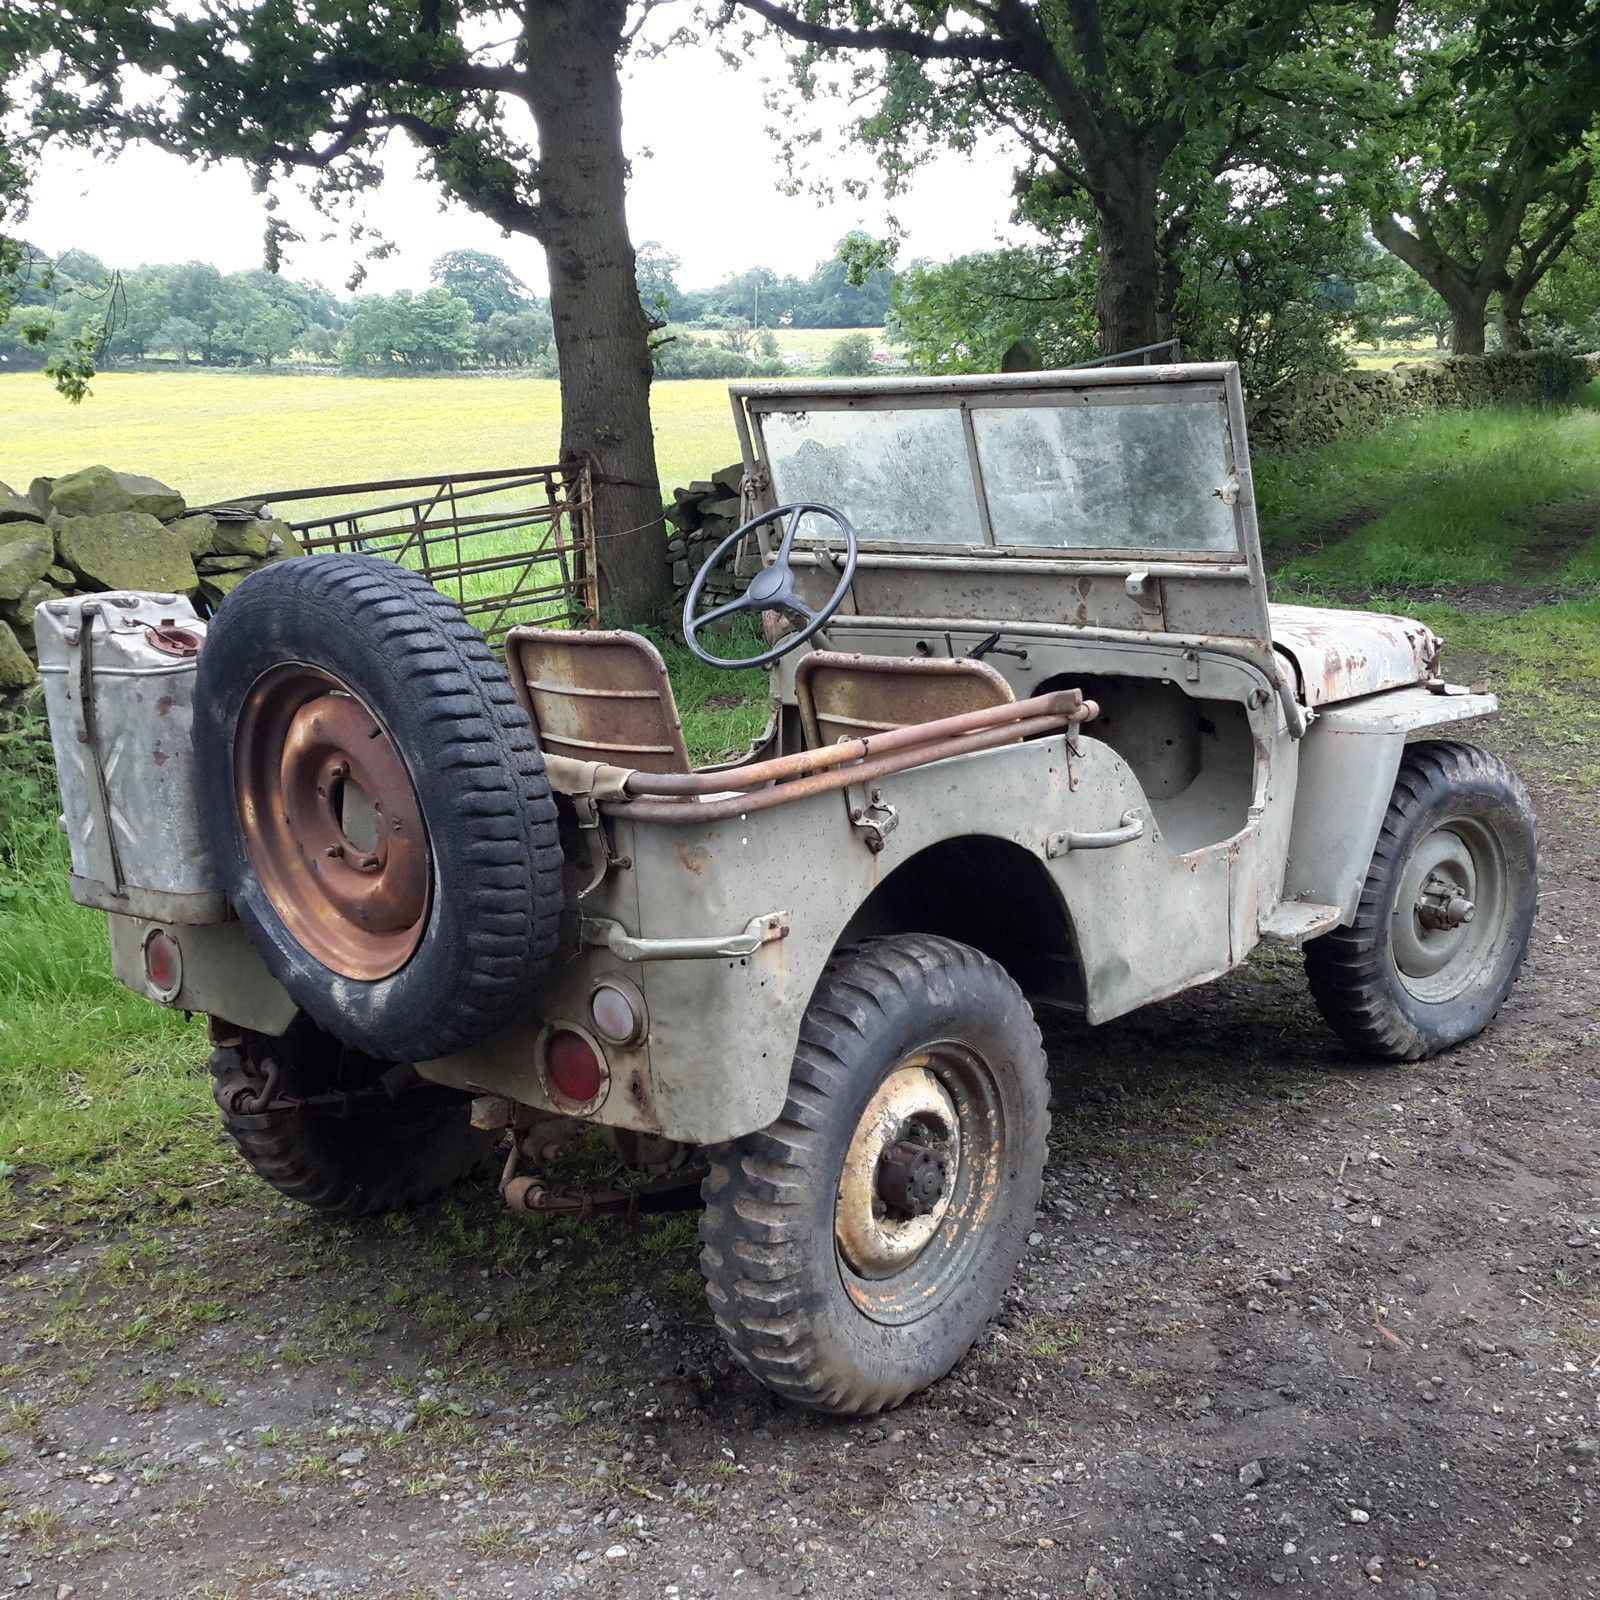 1955 dodge royal barn find for sale - Willys Jeep 1942 Ford Gpw Ww2 Jeep Classic Car Barn Find